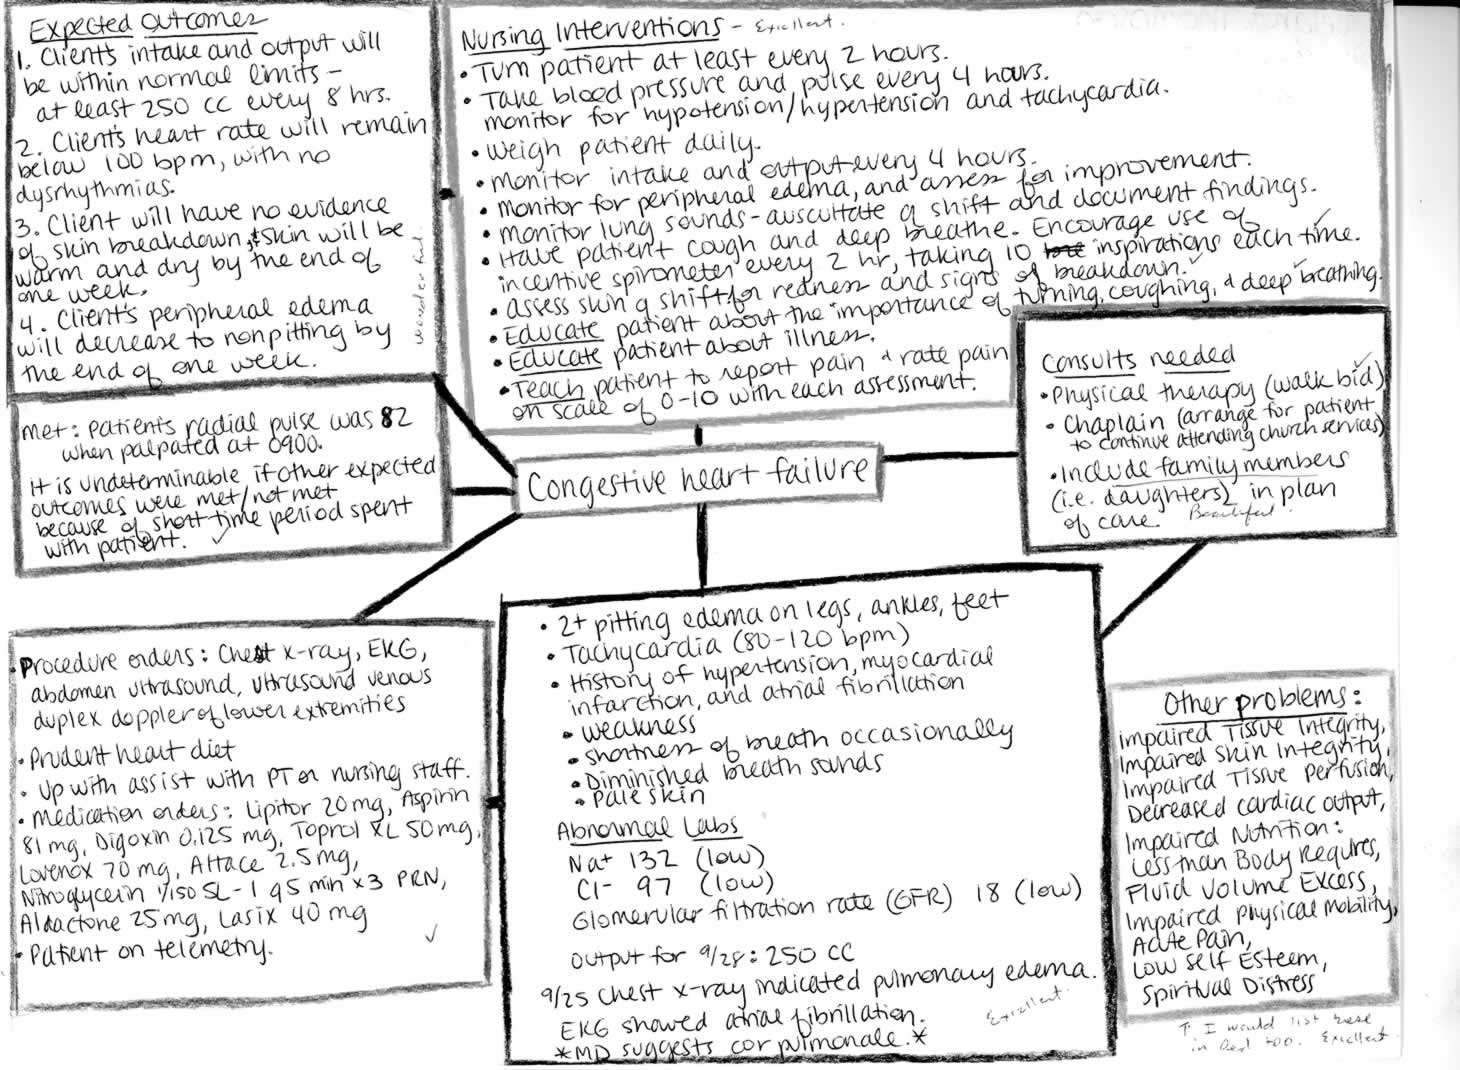 nursing concept maps templates tools of tqm